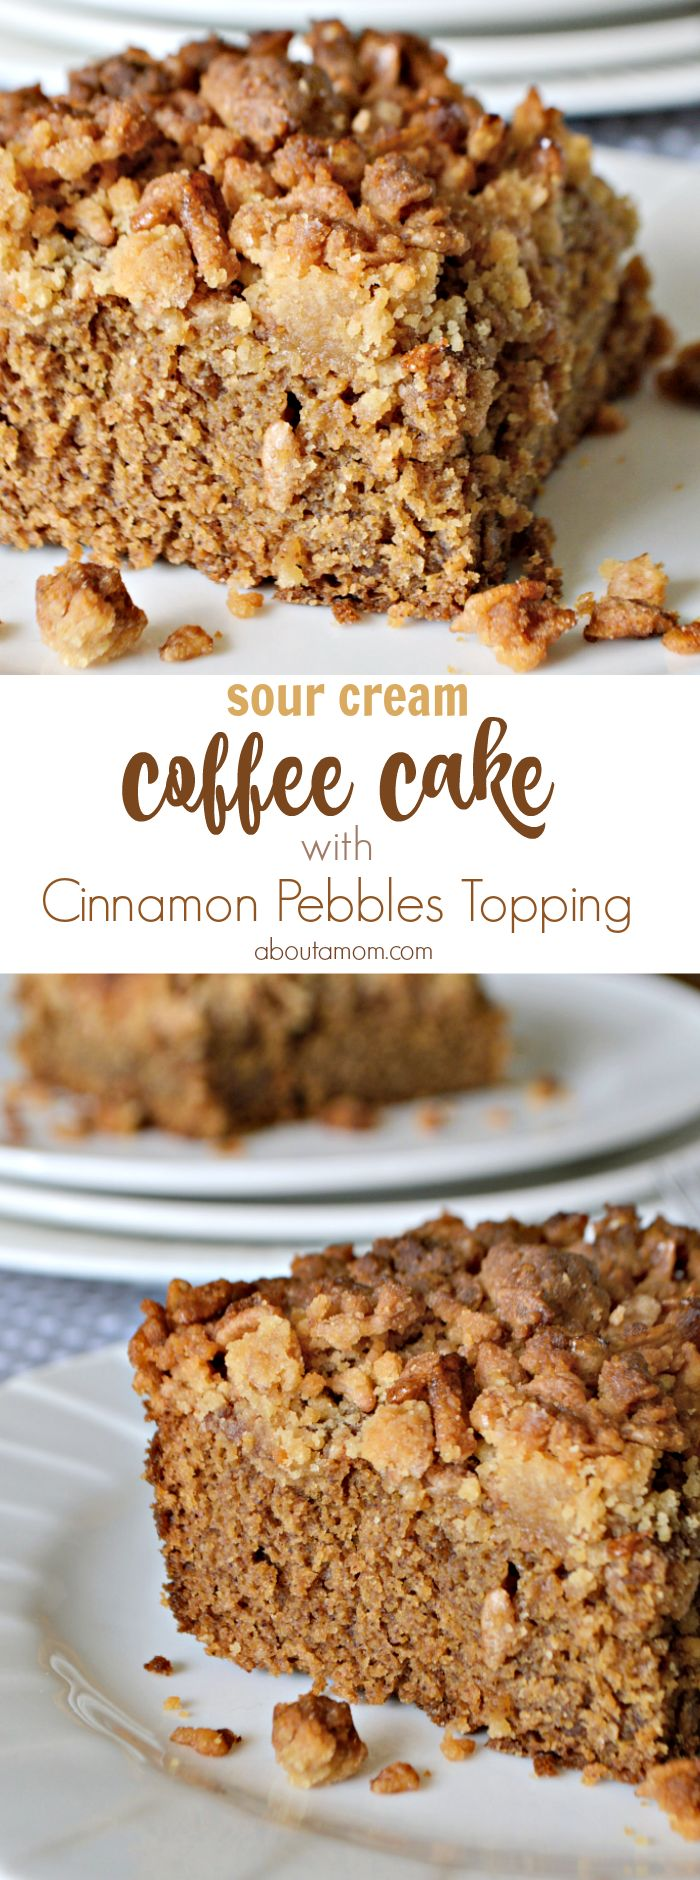 Sour cream coffee cake the frugal chef - A Sour Cream Coffee Cake With An Unexpected Crunchy Cinnamon Pebbles Crumb Topping That Everyone Will